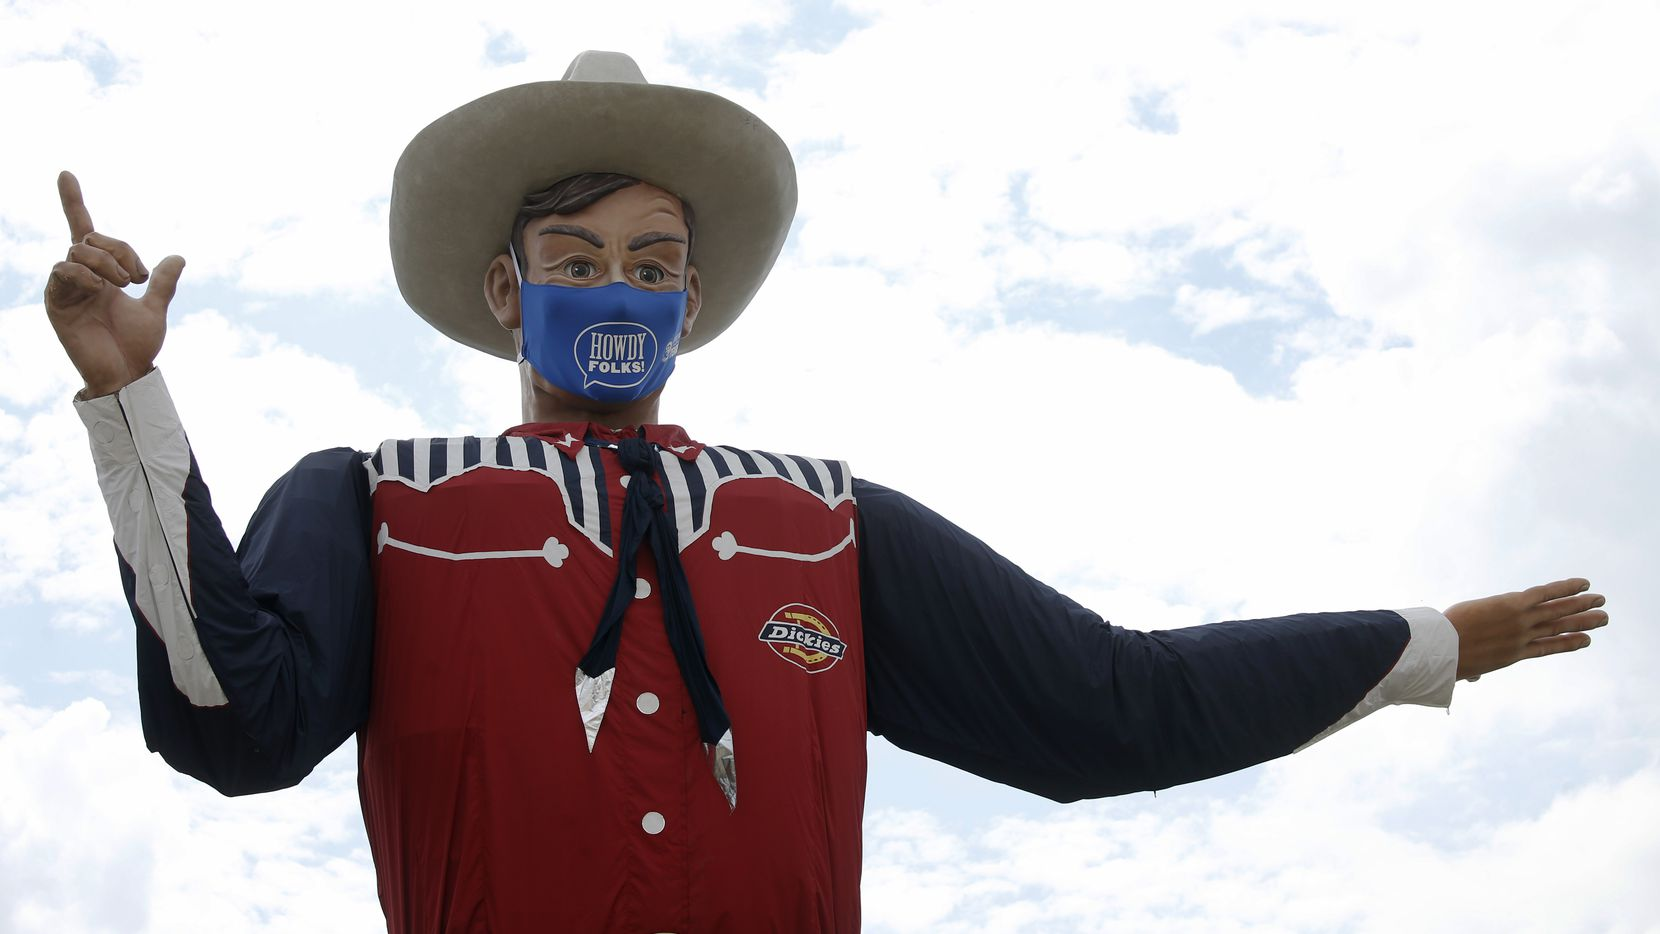 Big Tex sports a howdy folks face mask at Fair Park in Dallas on Wednesday, September 16, 2020. The mask is 84 inches by 45 inches or roughly 7 feet by 4 feet. The State Fair of Texas has been cancelled this year due to the global pandemic. The State Fair of Texas will open on weekends selling drive-thru fair food and photos with Big Tex in September and October. (Vernon Bryant/The Dallas Morning News)